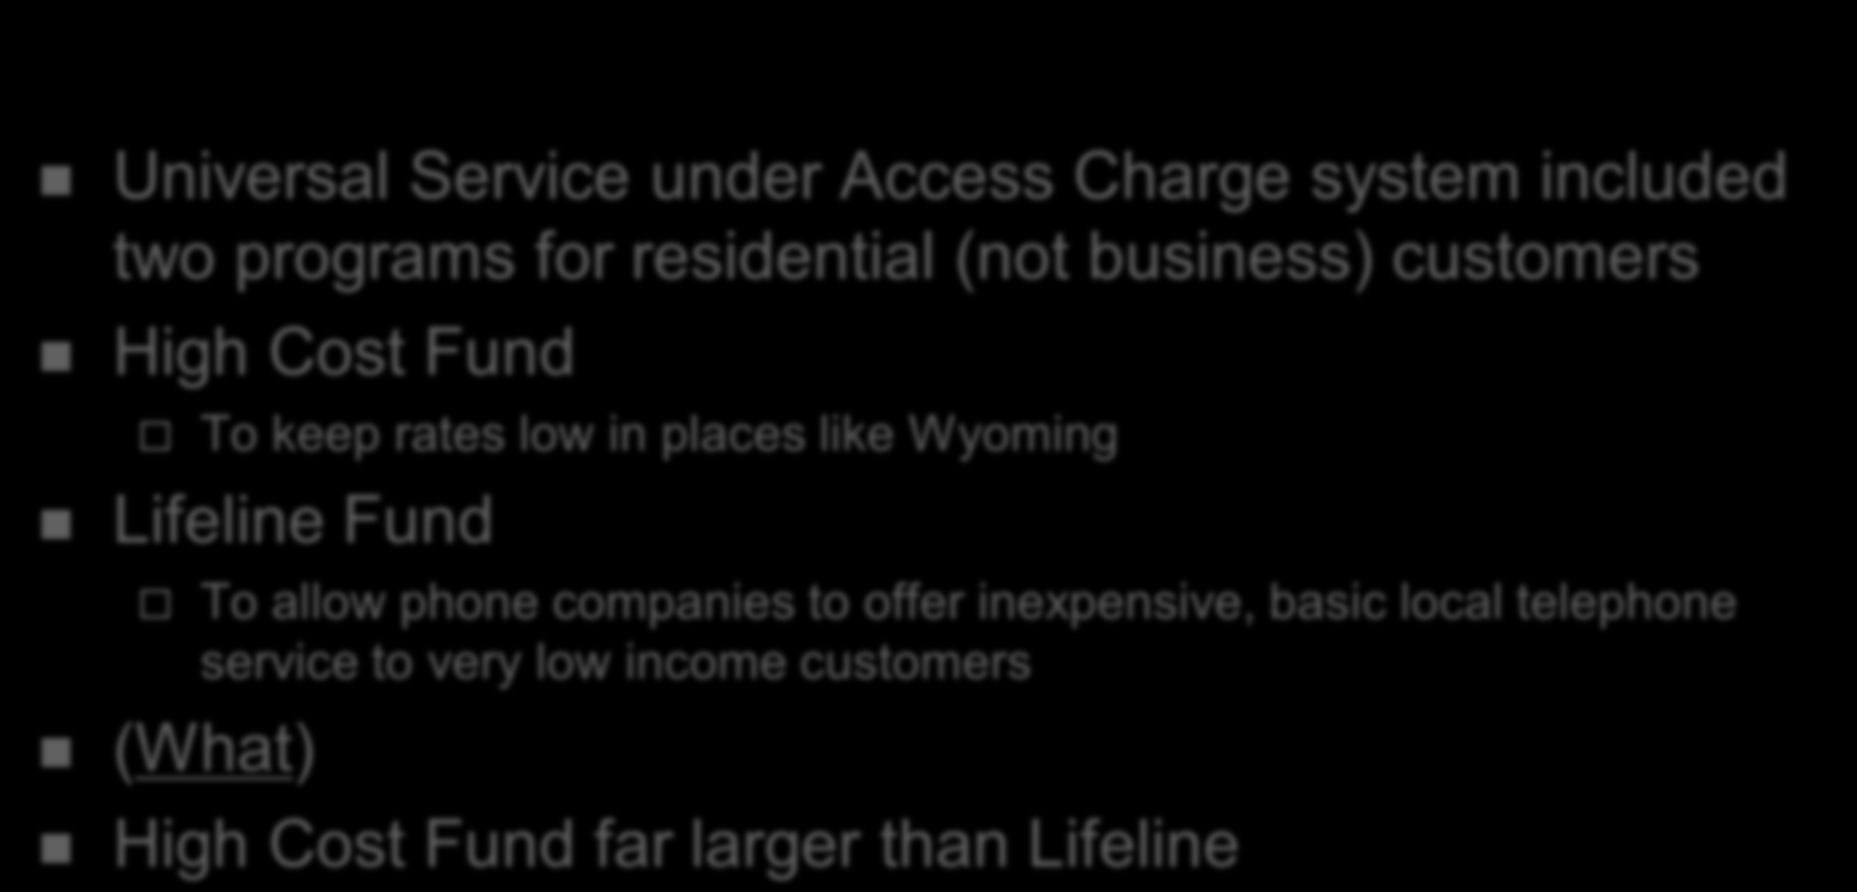 History of Universal Service in the USA Universal Service under Access Charge system included two programs for residential (not business) customers High Cost Fund To keep rates low in